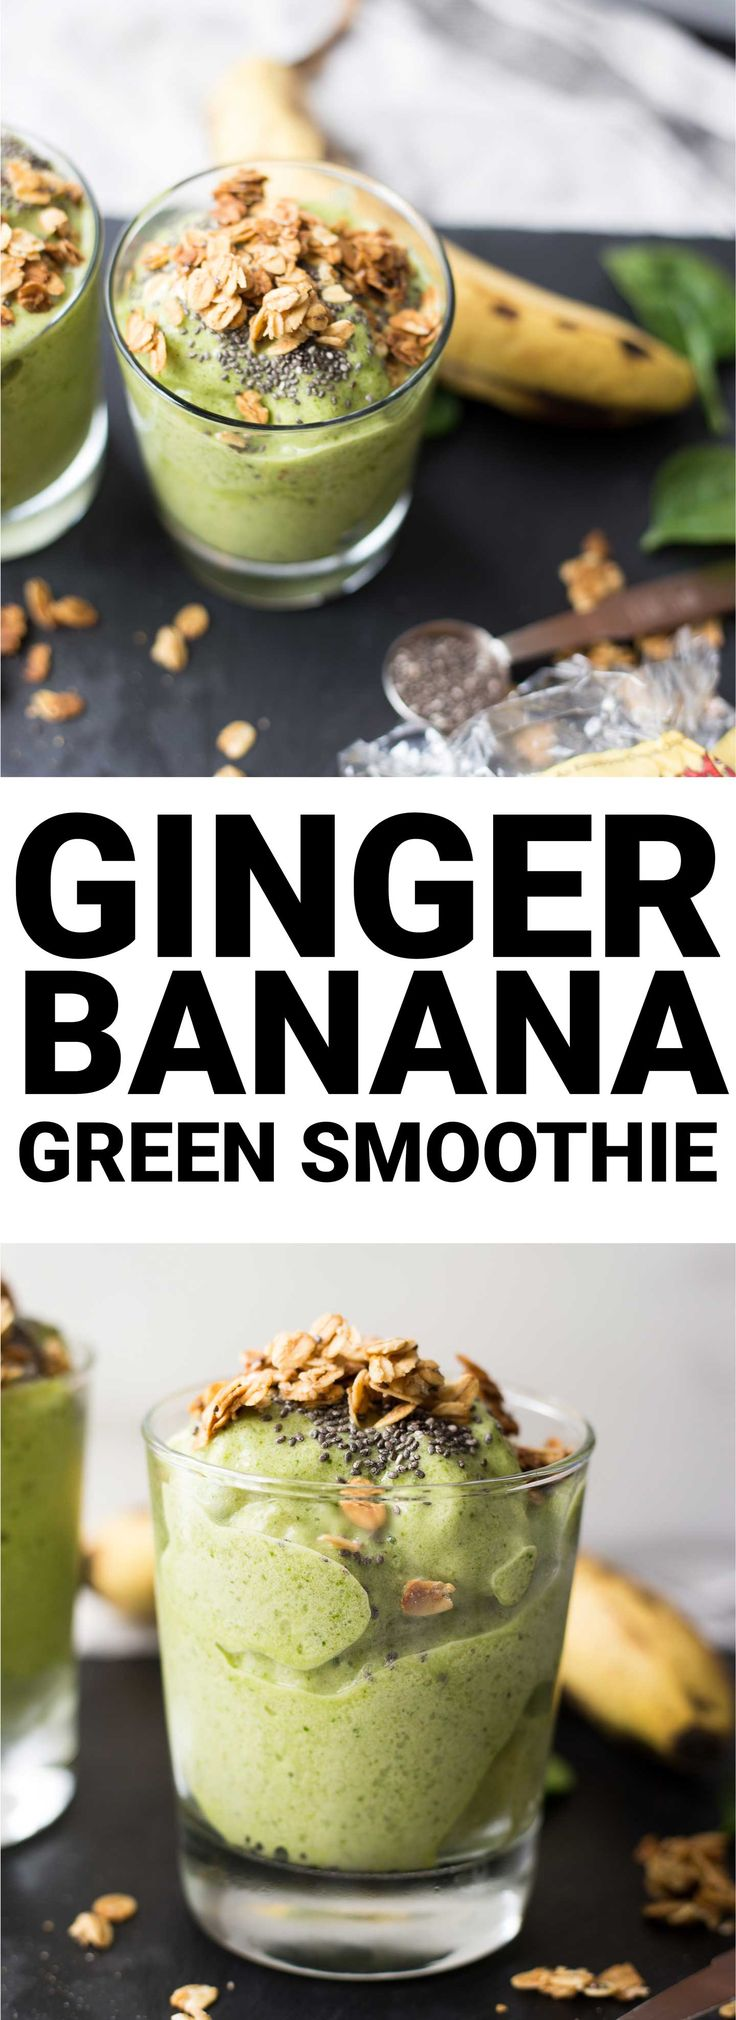 Ginger Banana Green Smoothie: This isn't your average smoothie! Packed with spicy ginger flavor, this vegan and gluten free smoothie is the perfect healthy way to start your day. || fooduzzi.com recipe